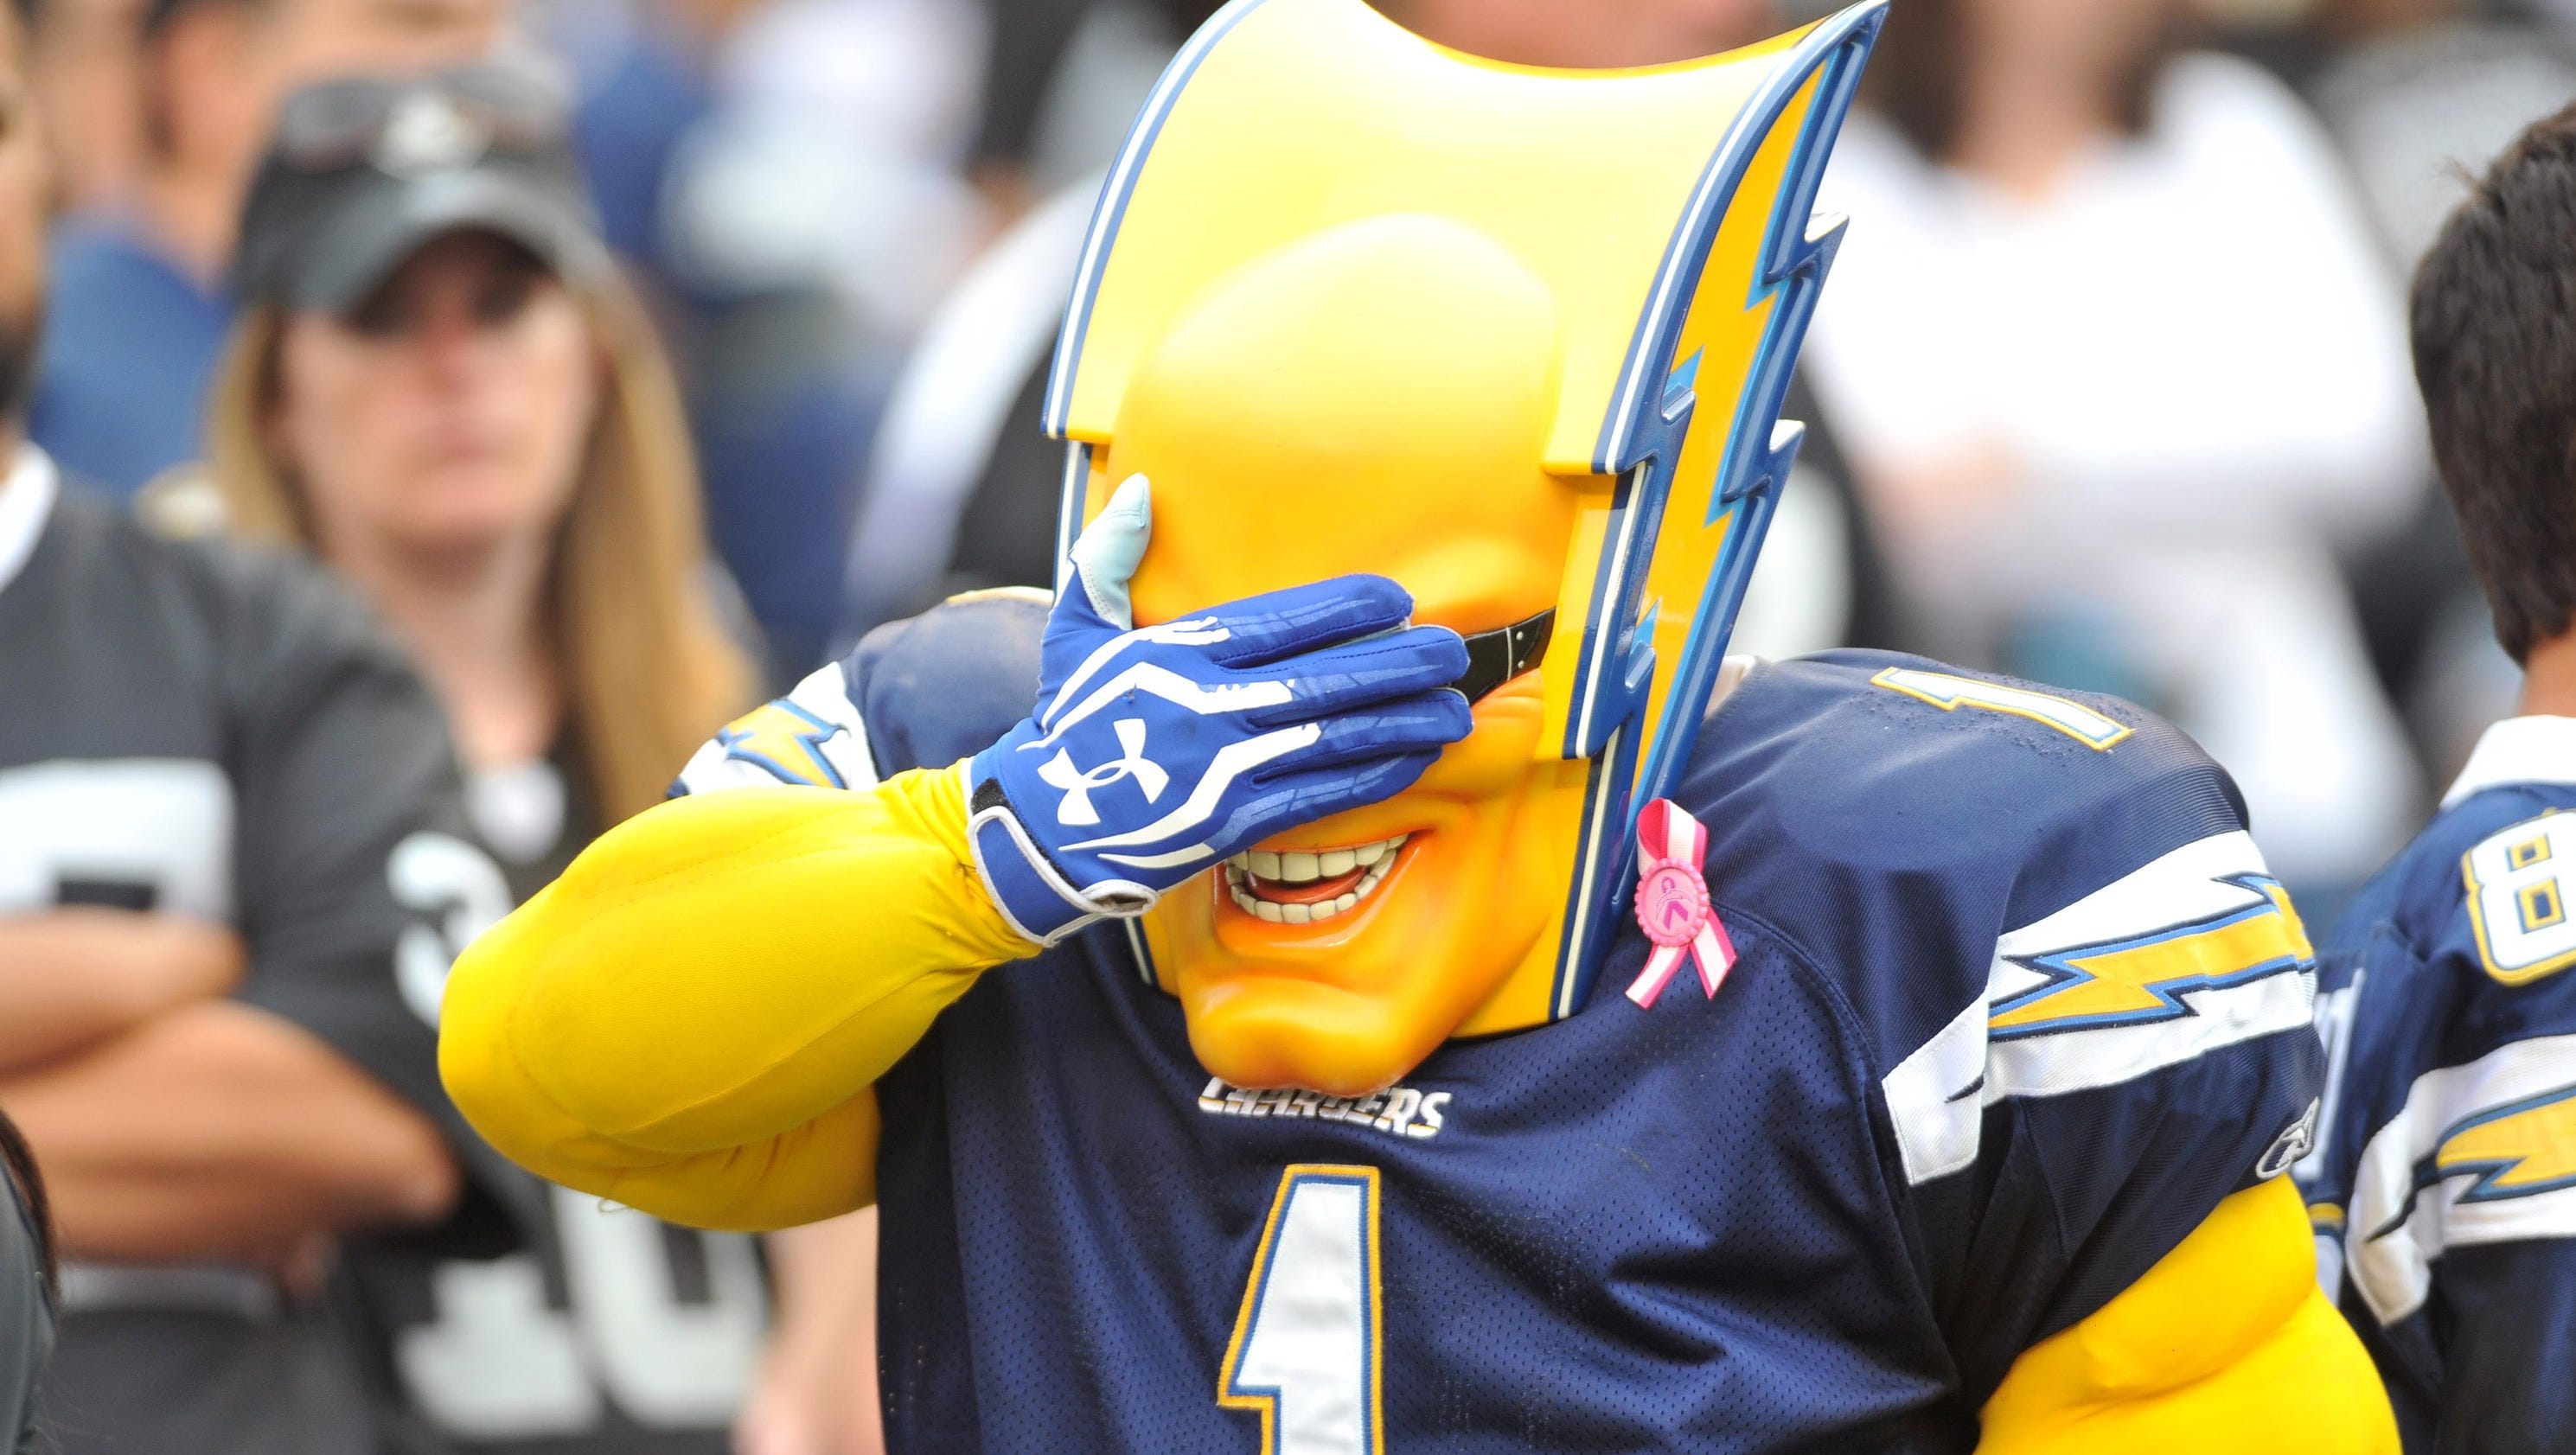 San Diego Chargers Go On The Attack In Stadium Campaign